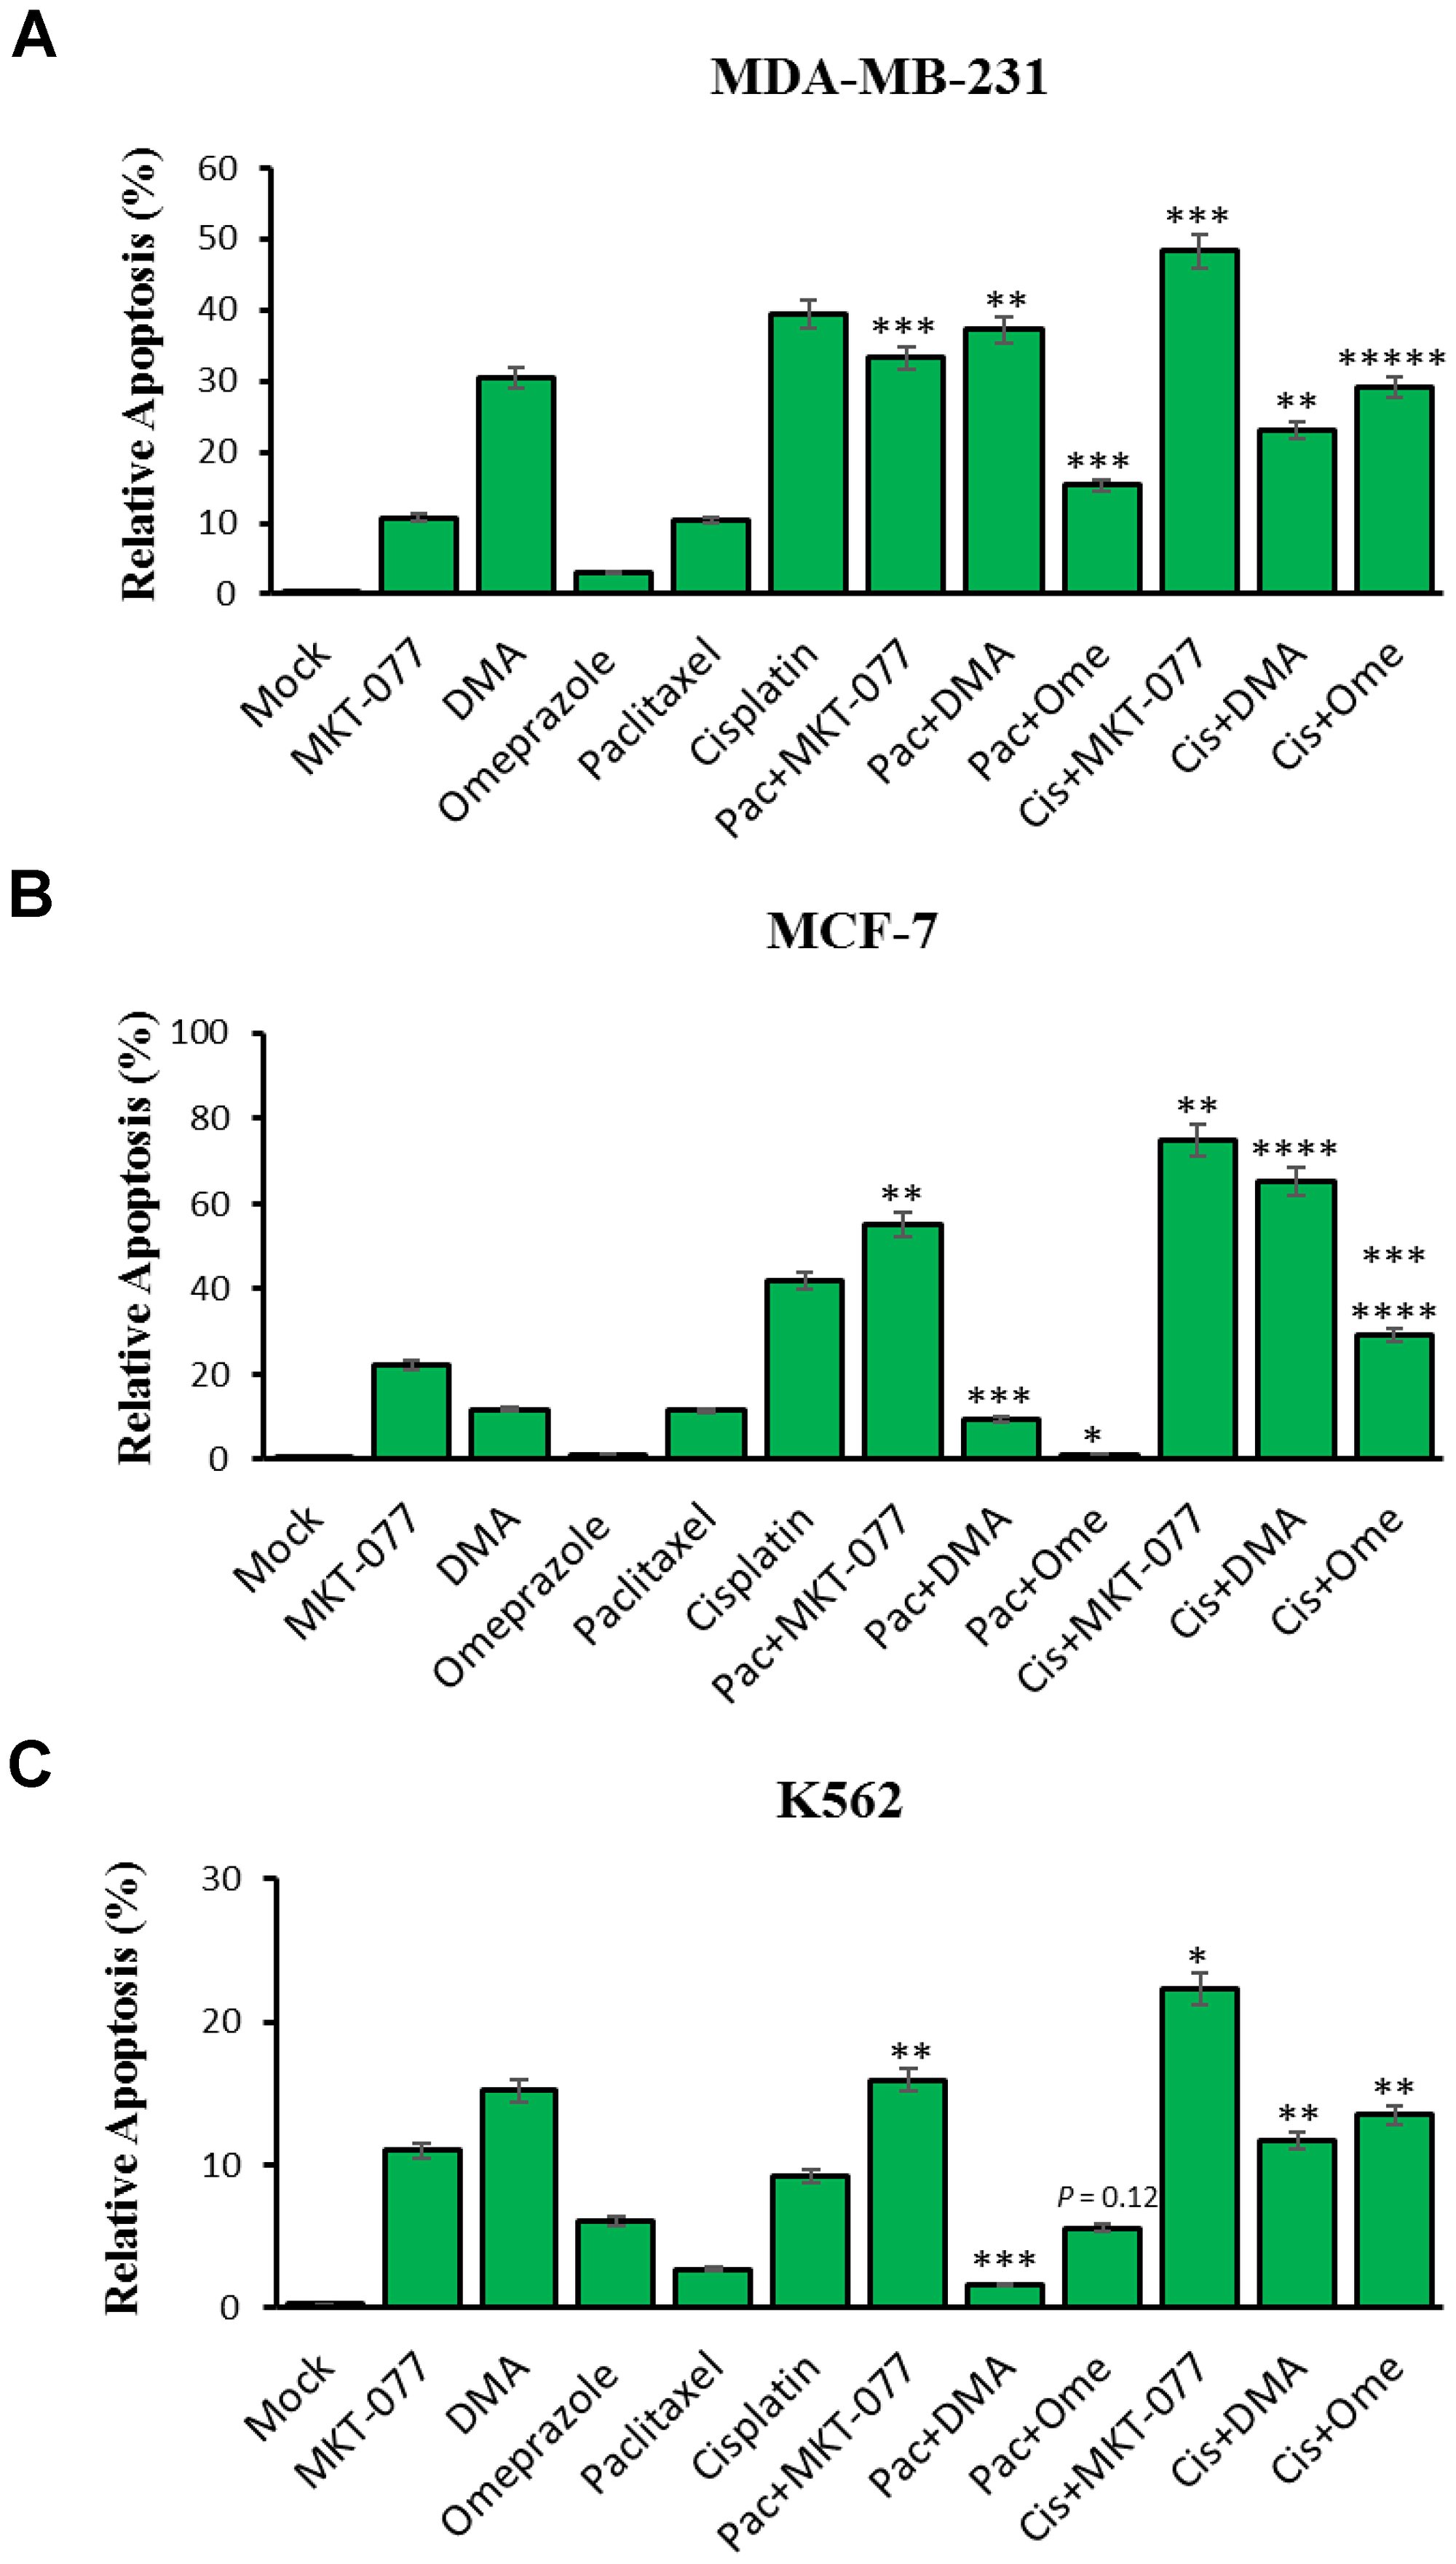 MKT-077, Dimethylallyl (DMA) and omeprazole-targeted mortalin effects on paclitaxel and cisplatin-induced apoptosis in cancer cells.